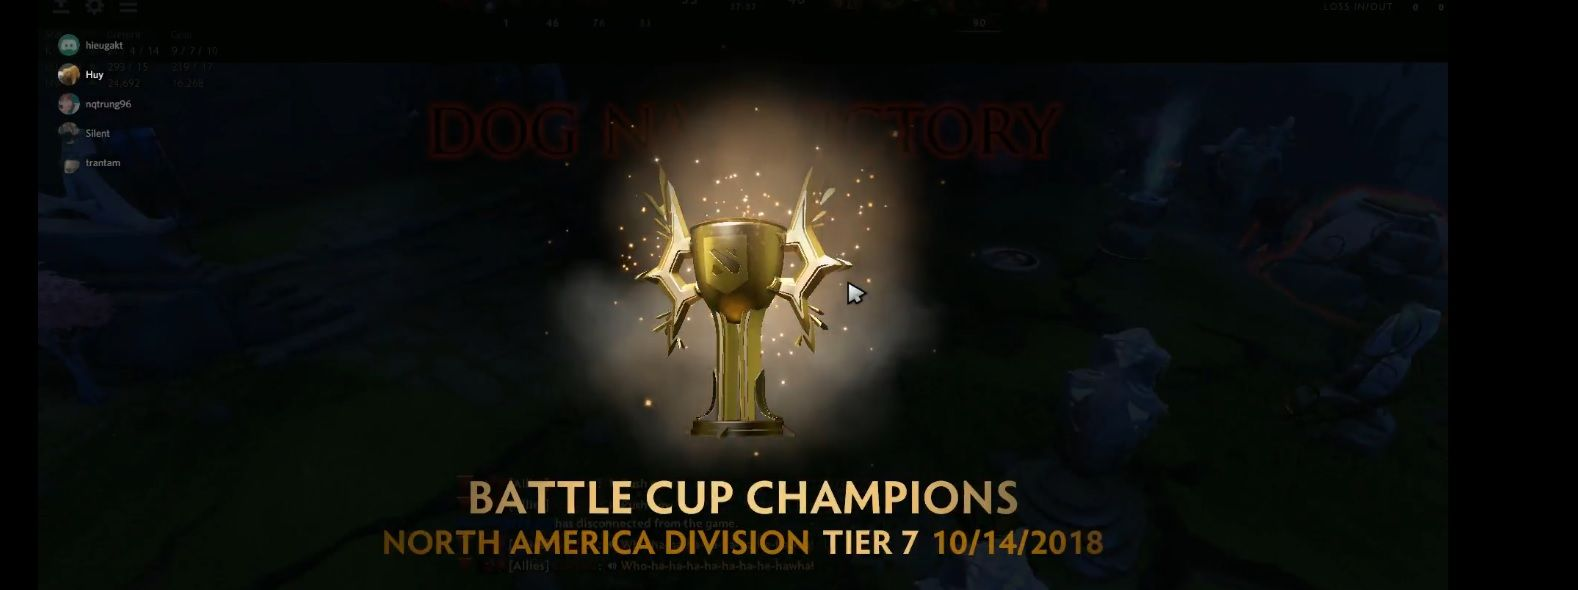 buy dota 2 battle cup wins